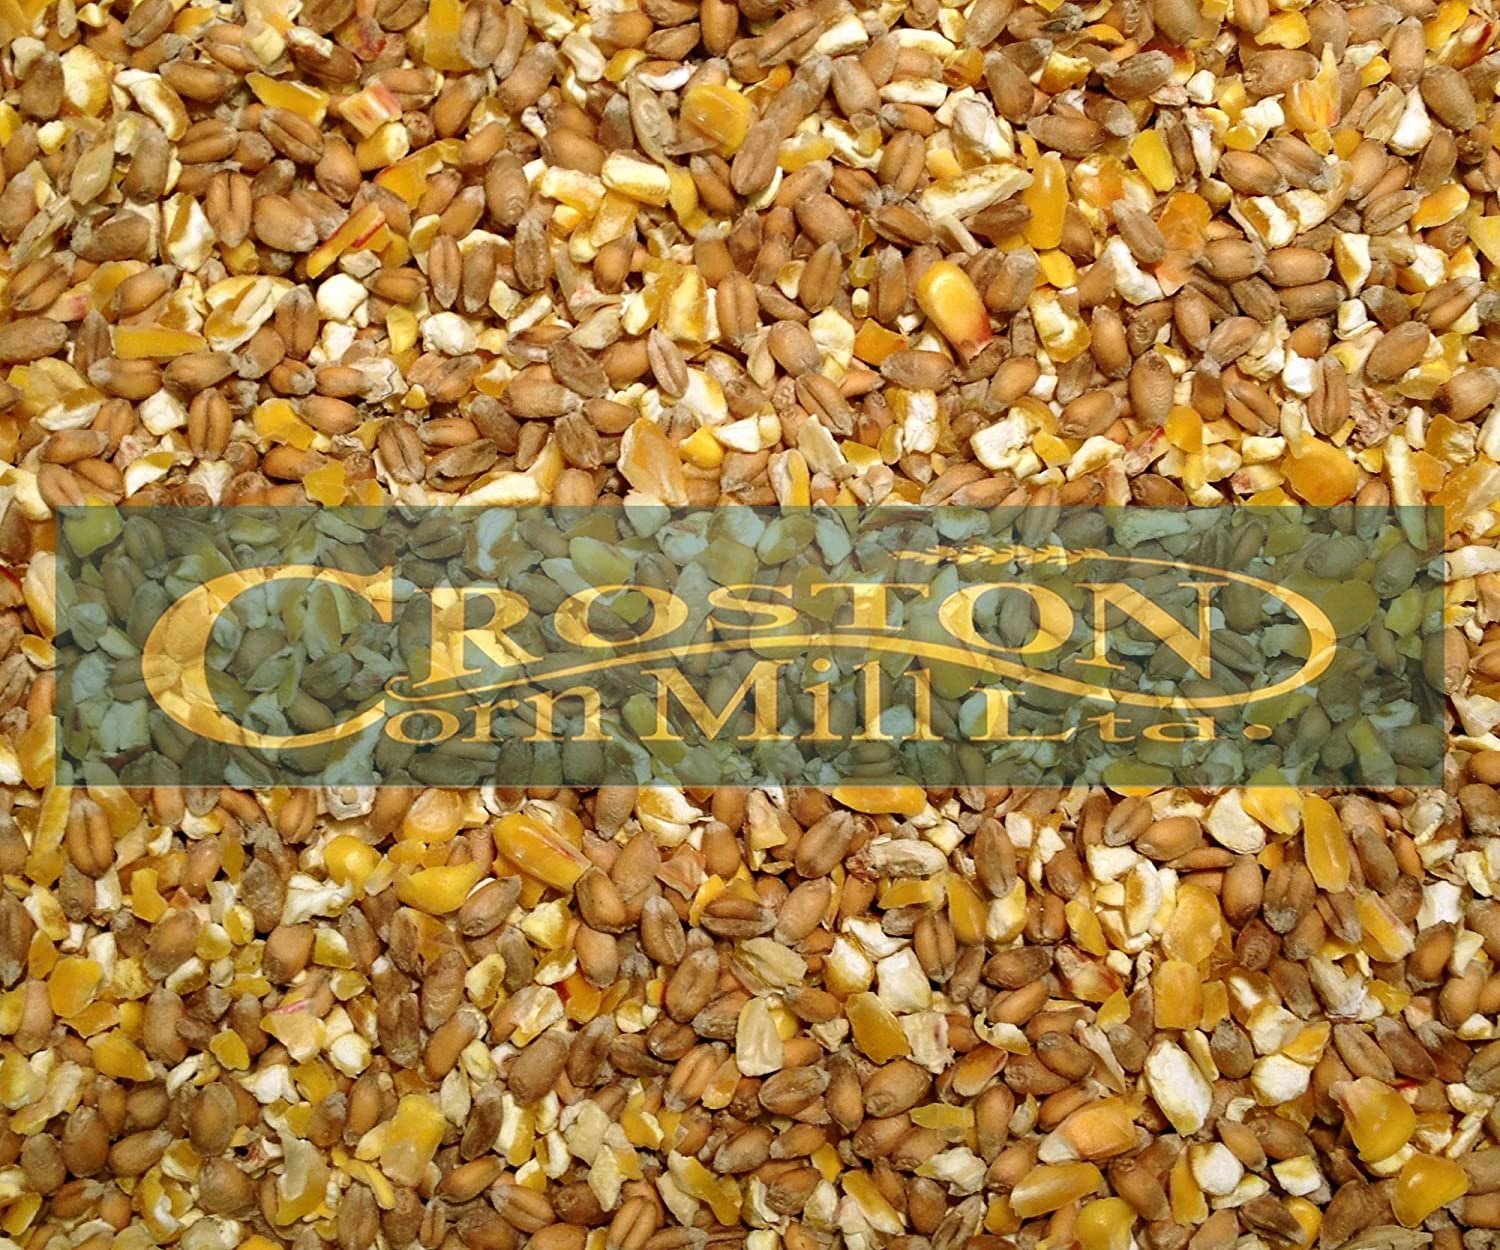 20kg Mixed Poultry Corn *50/50 Mix* + Soya Oil Croston Corn Mill